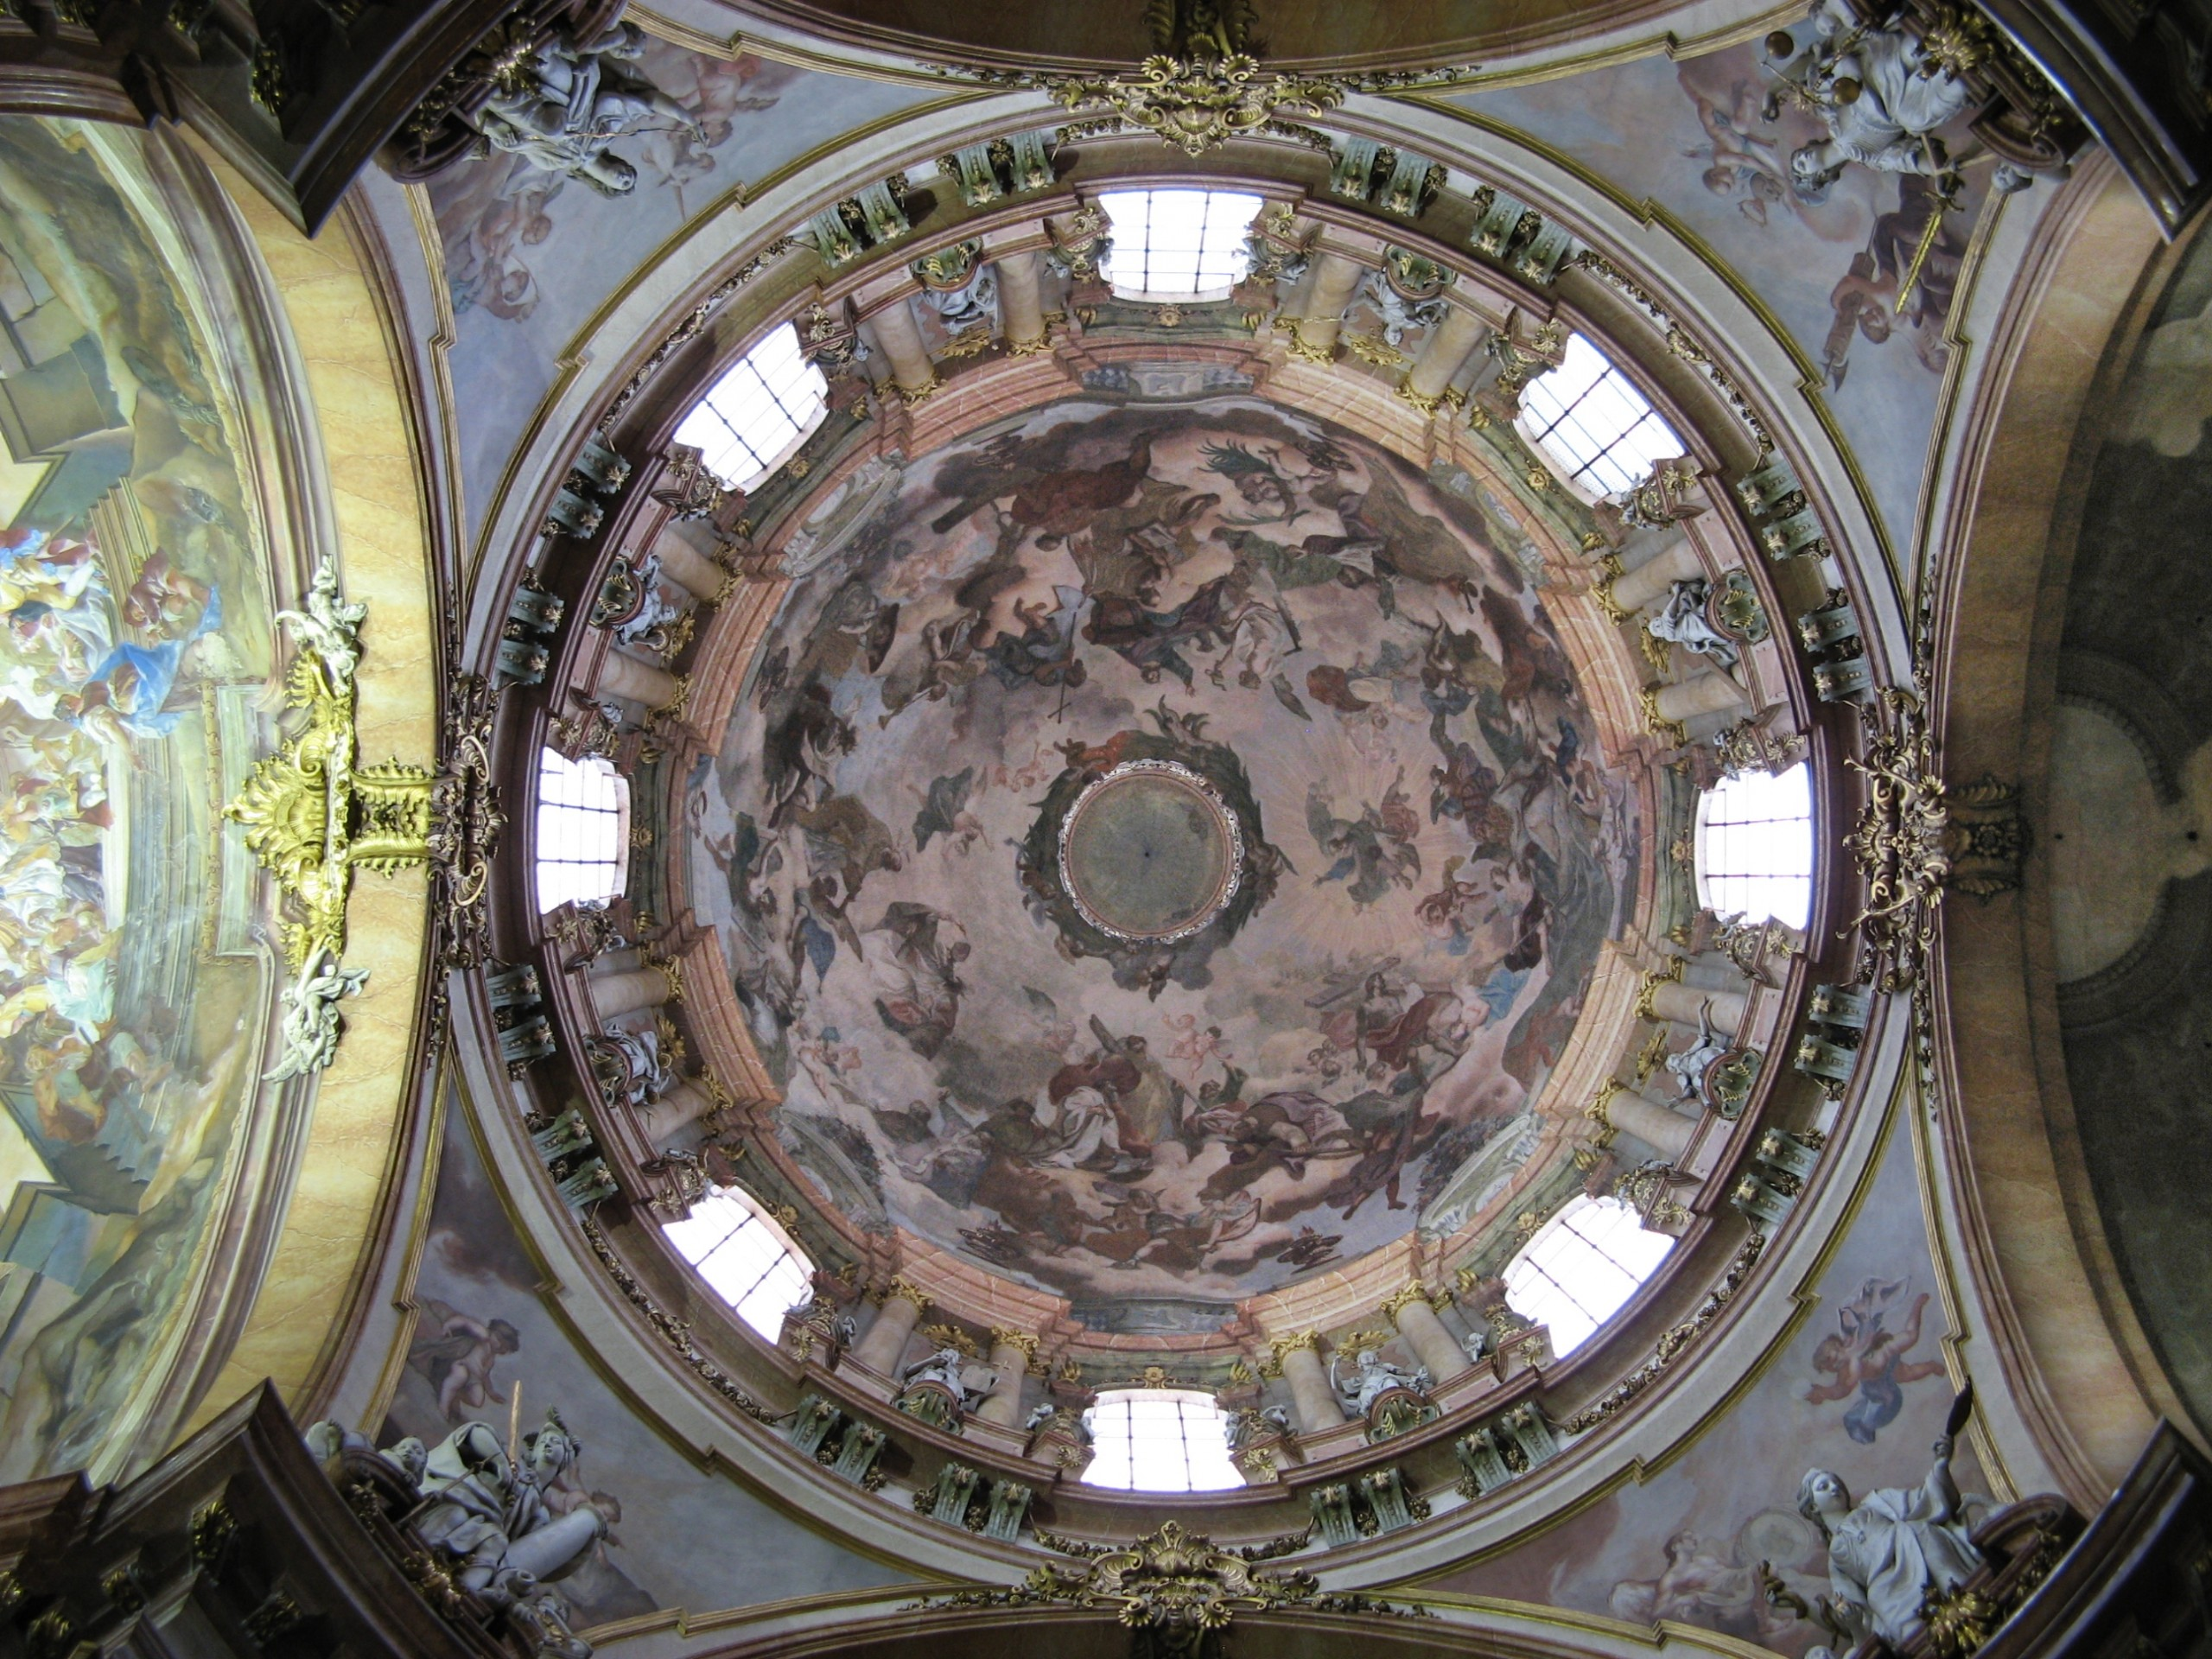 Interior side of the dome of St. Nicholas Church